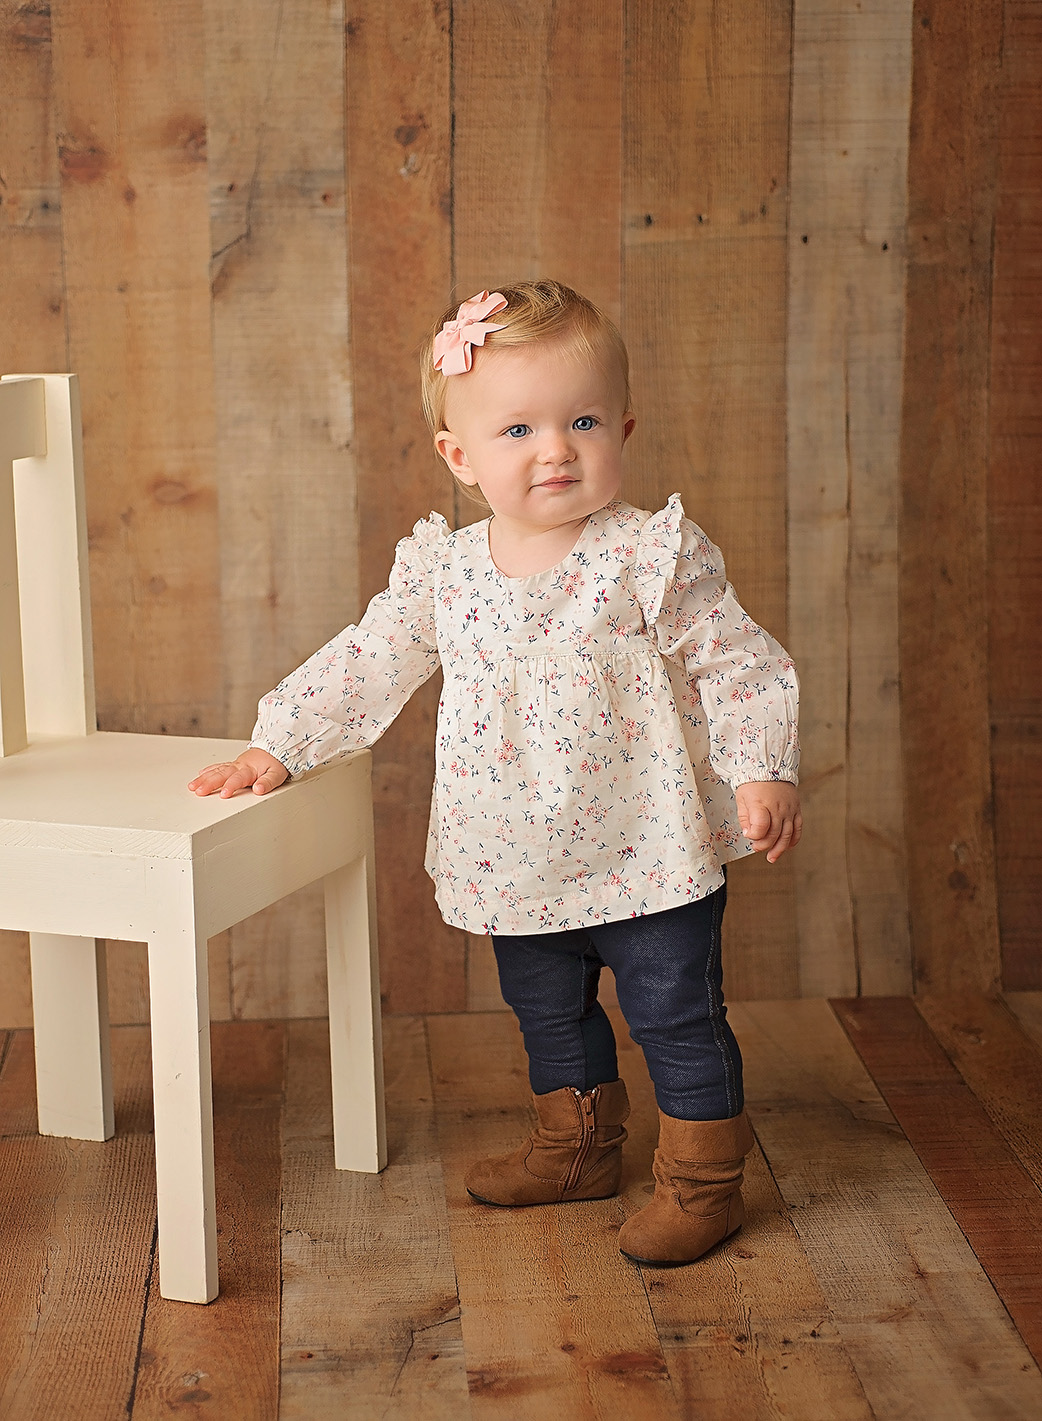 one year old girl standing by chair